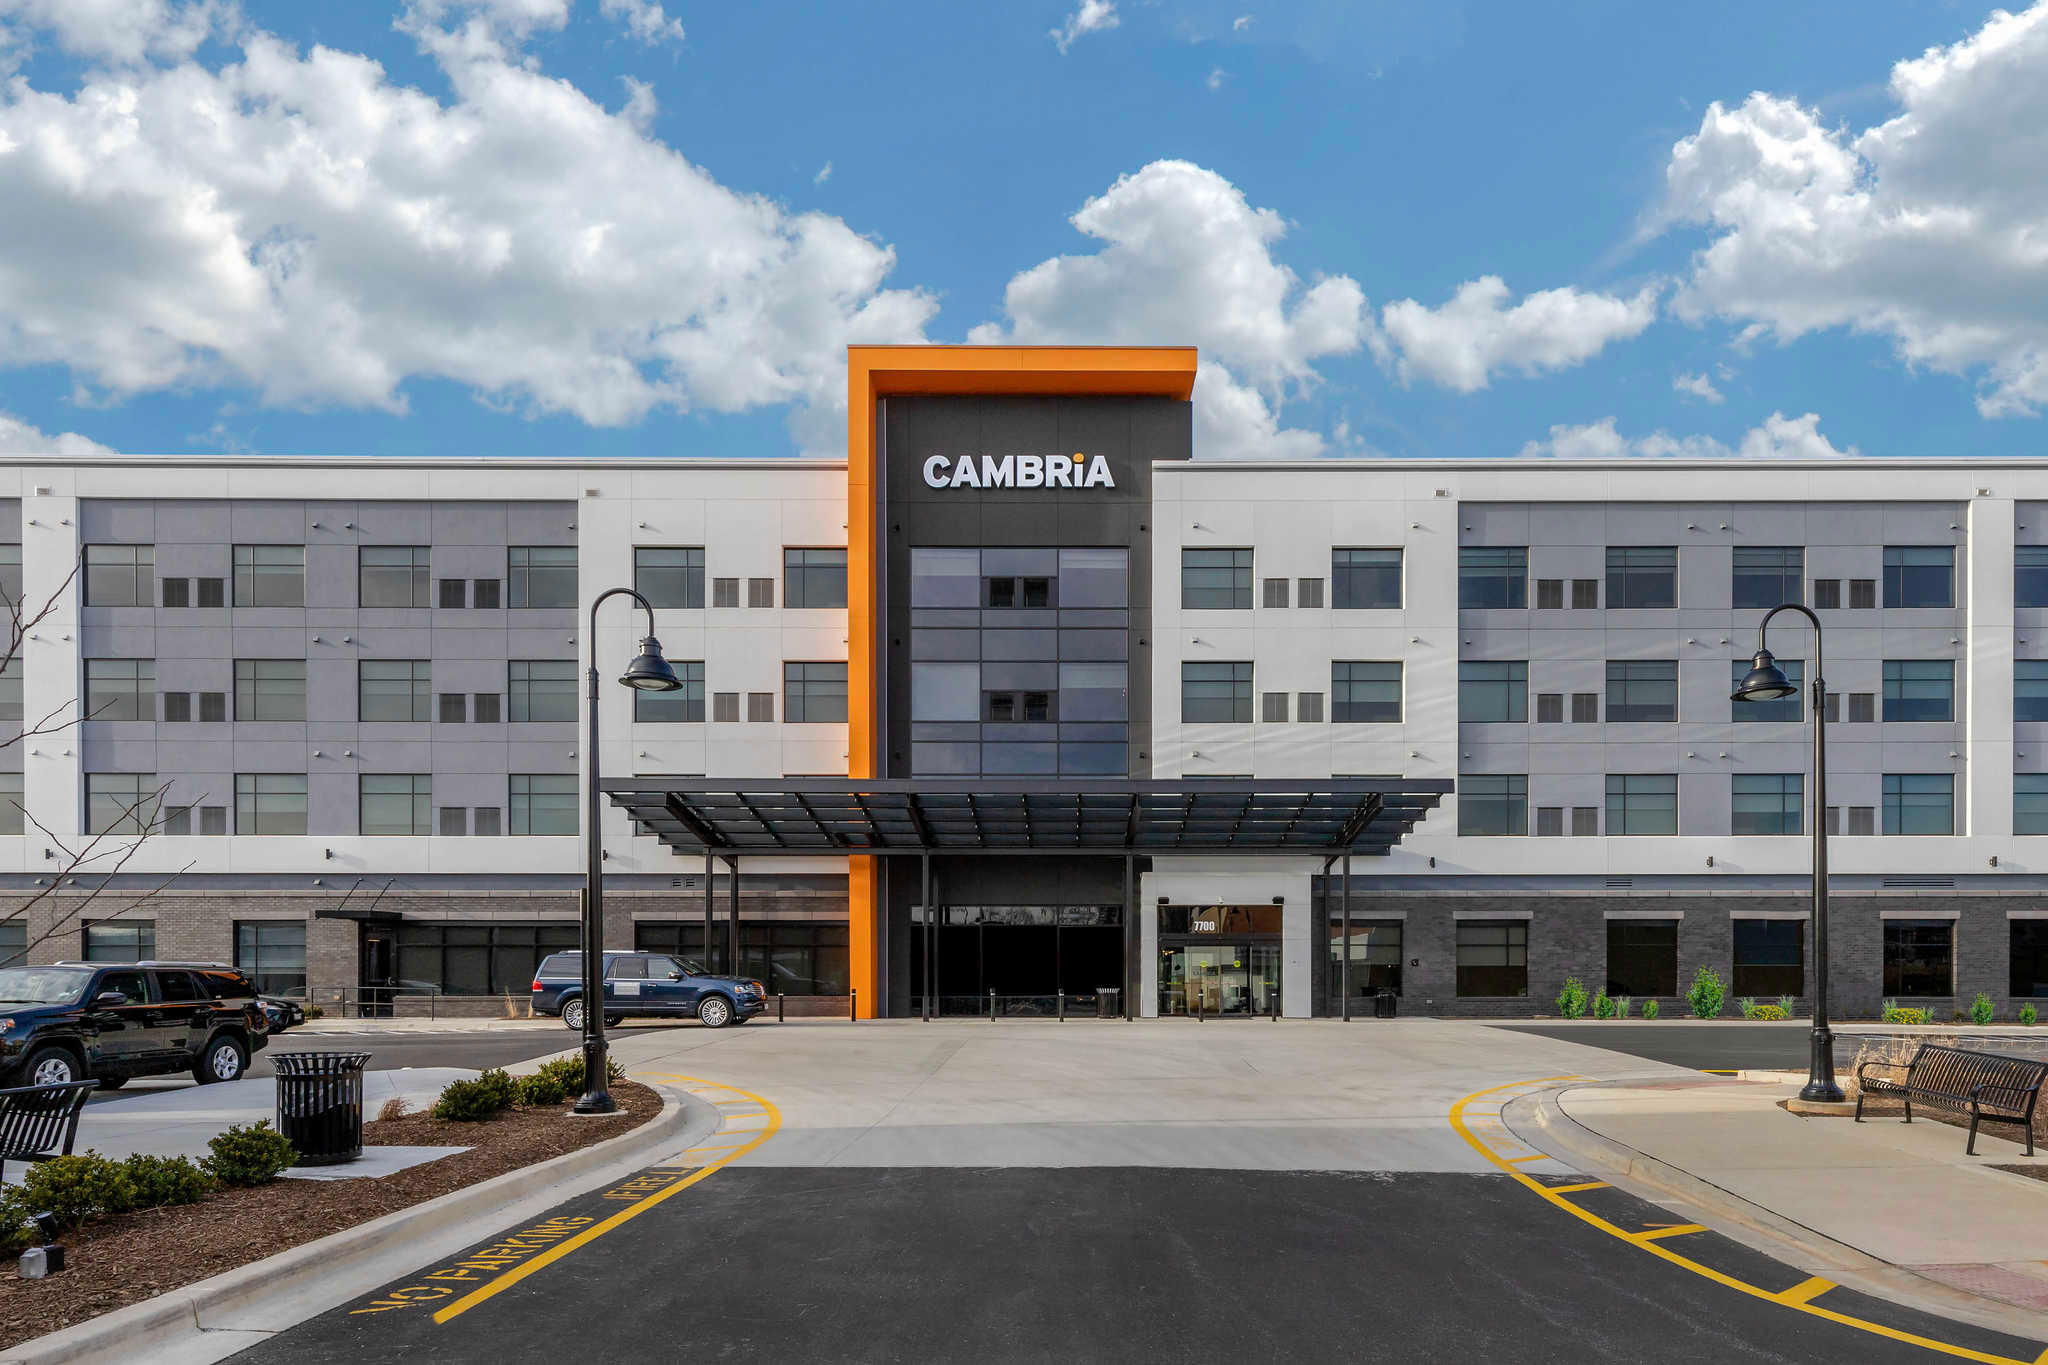 Cambria Hotel Arundel Mills-BWI Airport image 0